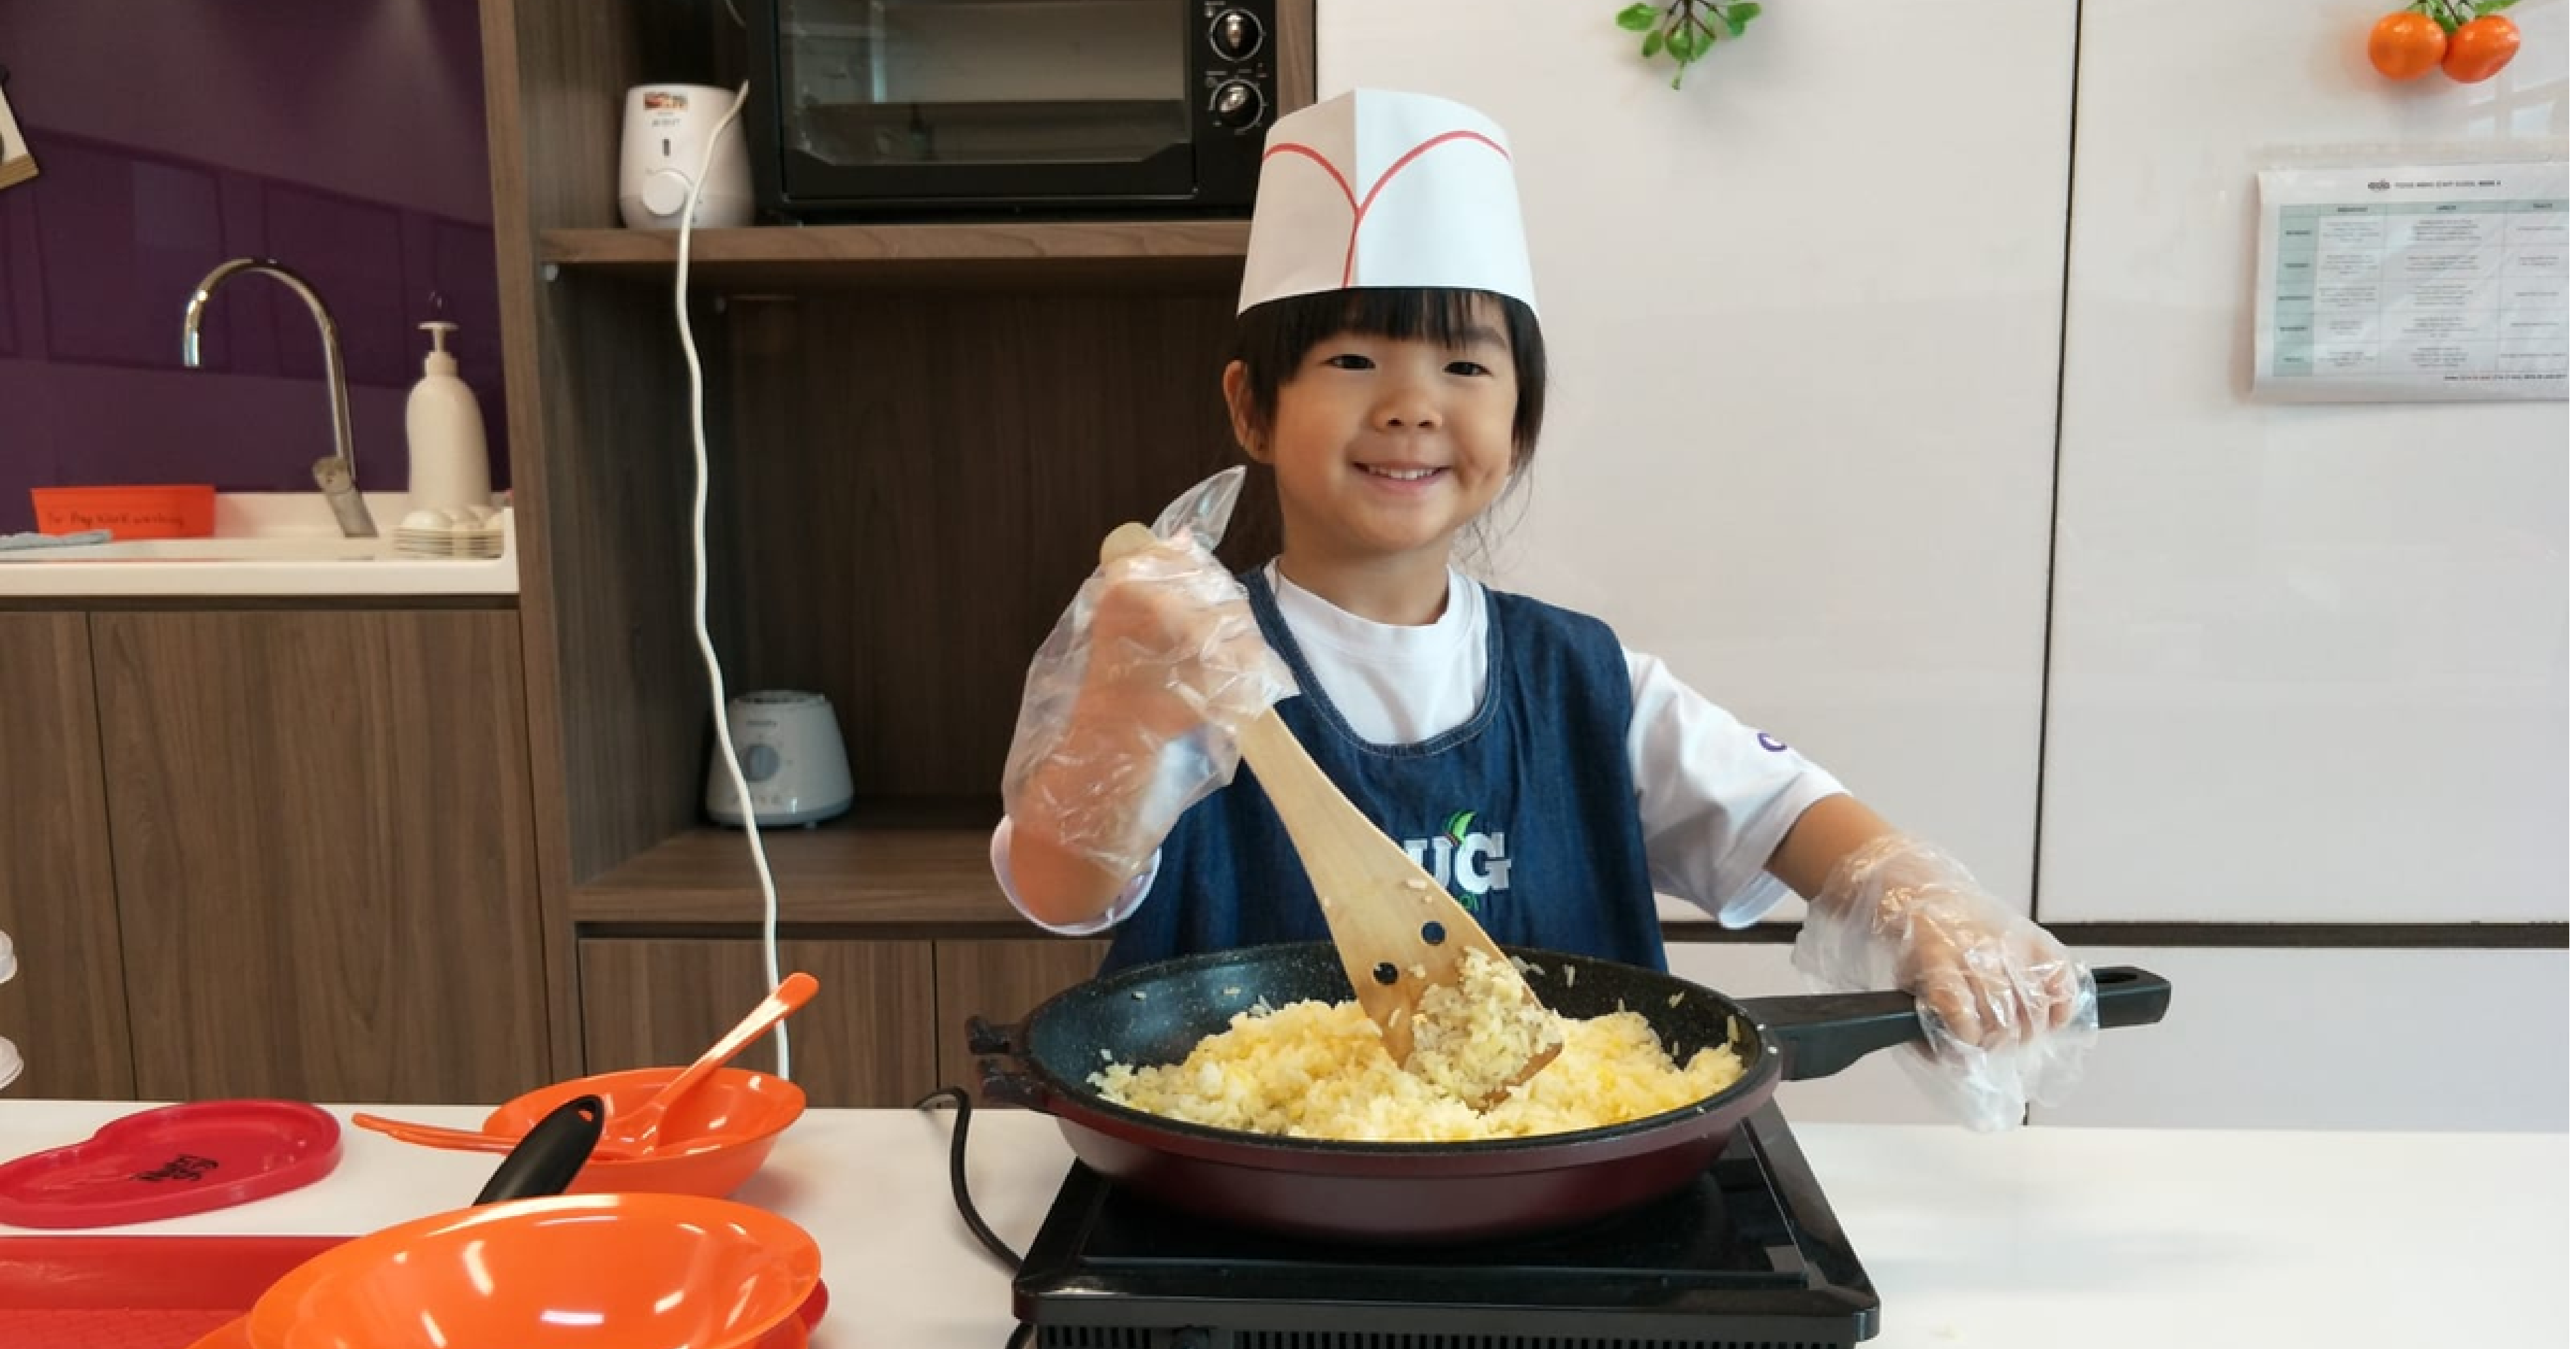 Cooking Up Fun & Much More With Your Kids